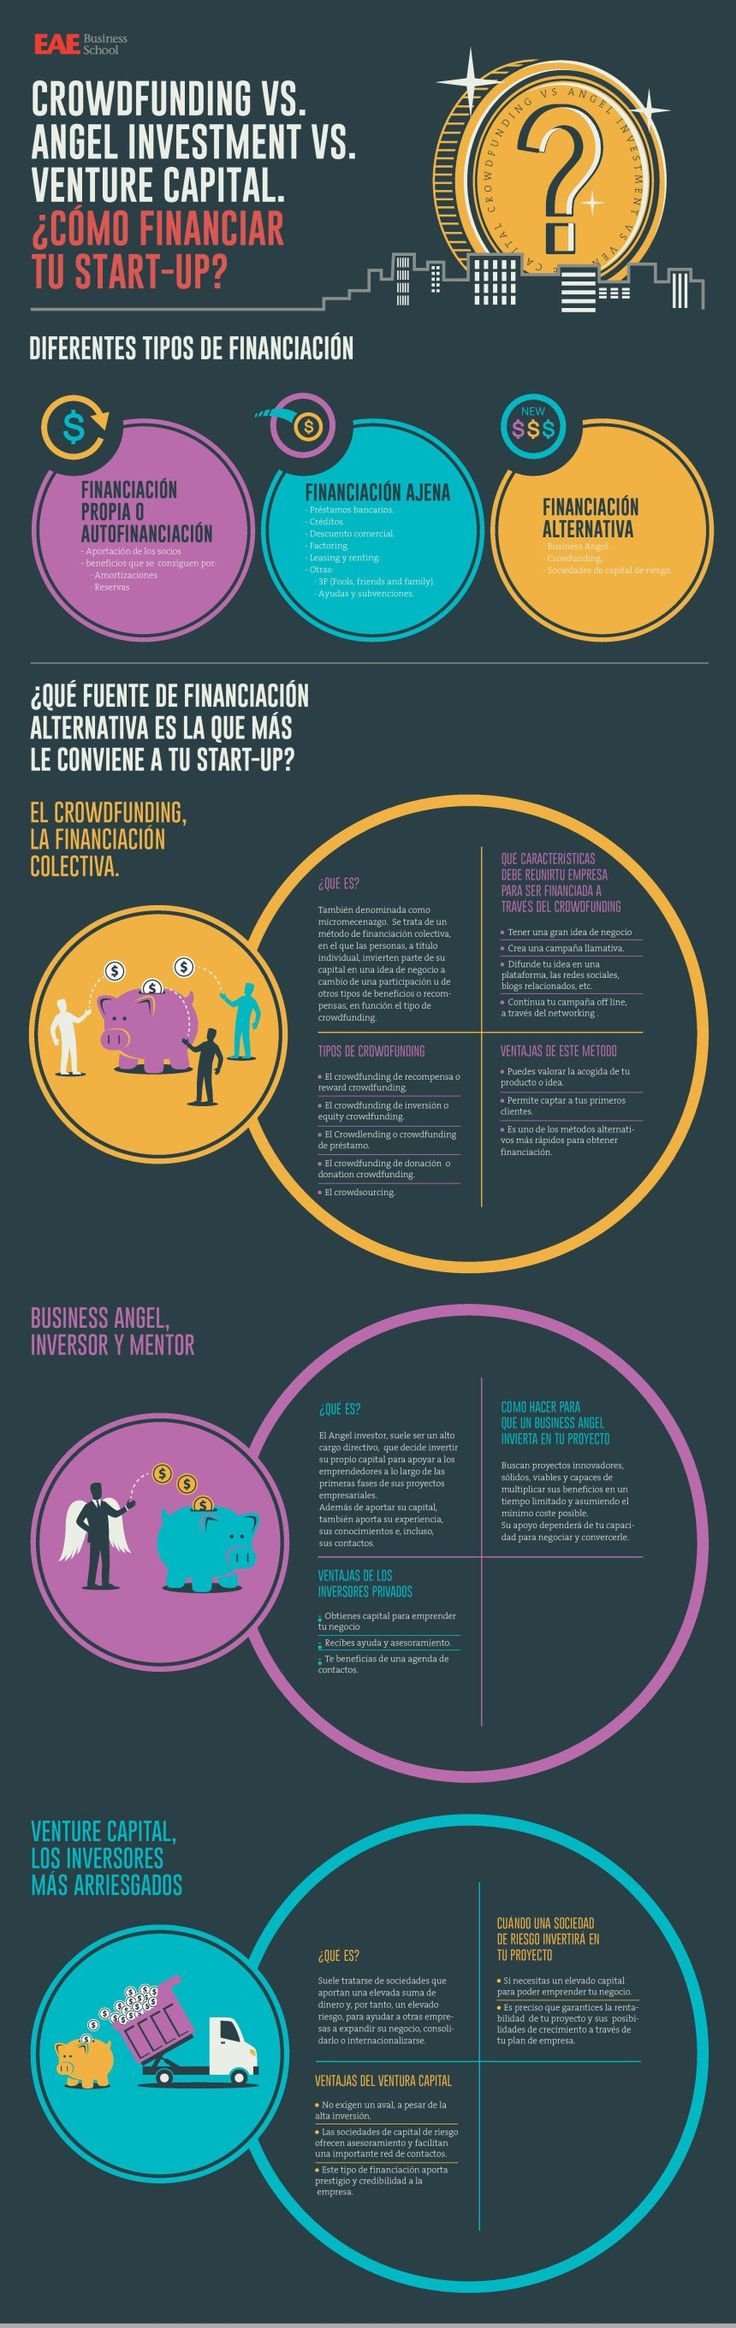 Crowdfunding vs Business Angel vs Capital Riesgo #infografia #infographic #entrepreneurship